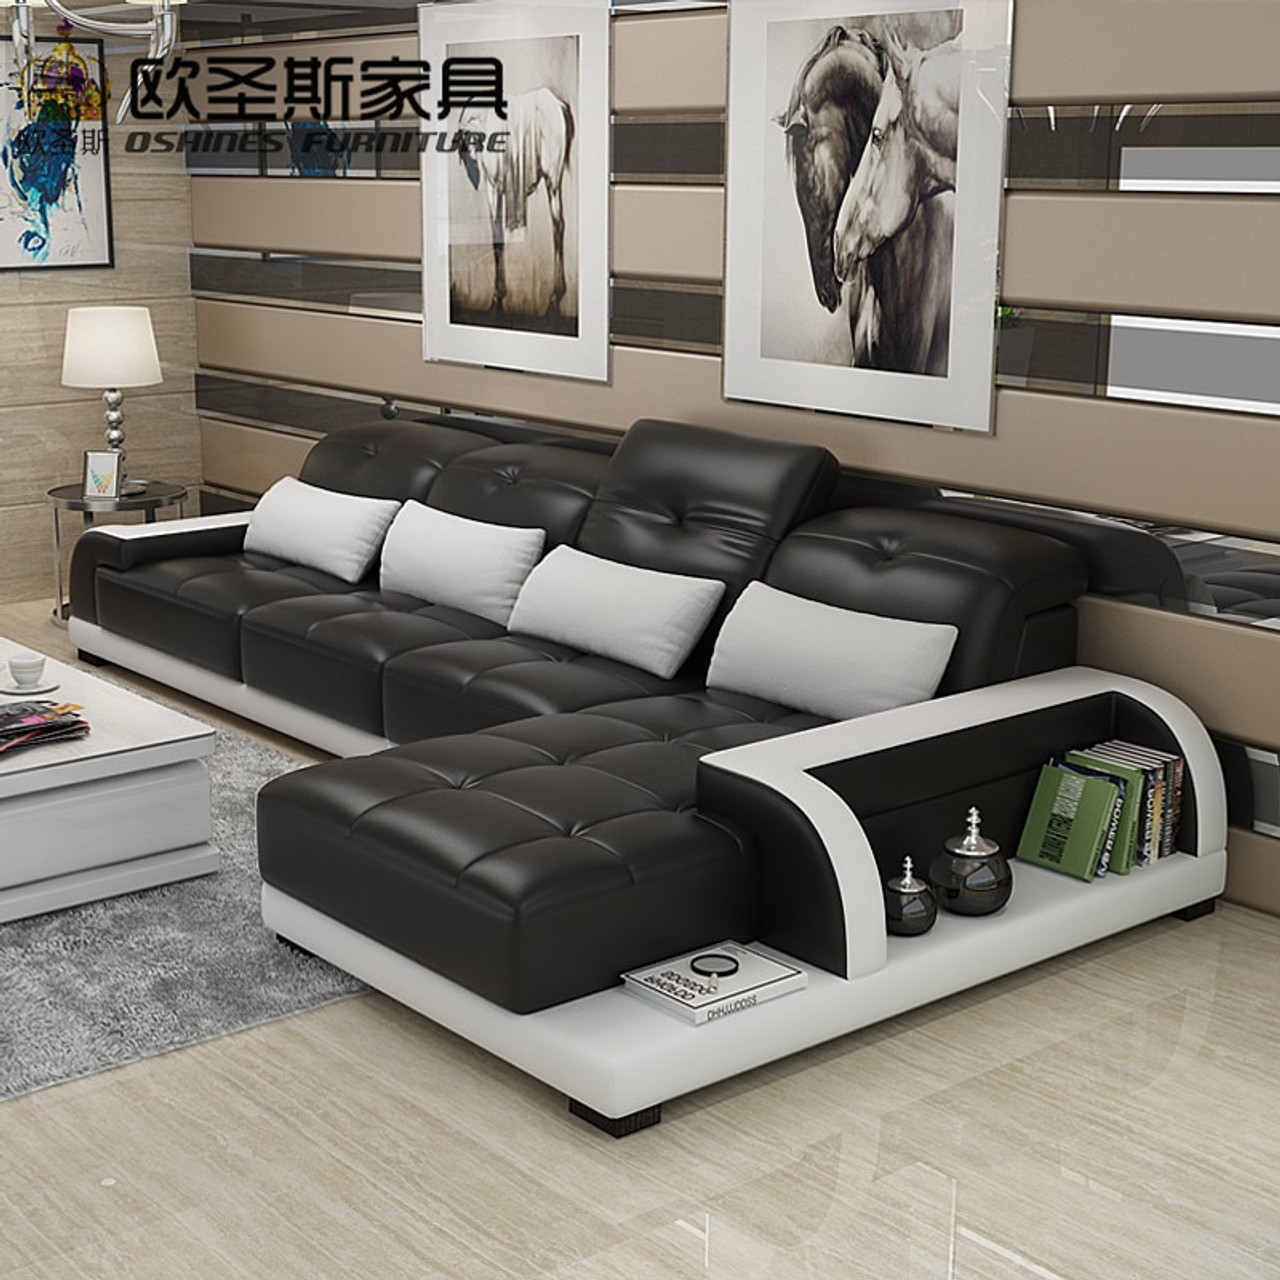 Barcelona White Modern Set Furniture Room L Shaped Sofa Living And Design Soft Black Cheers Cow Leather Big Stitching Sectional 80wkXnOP